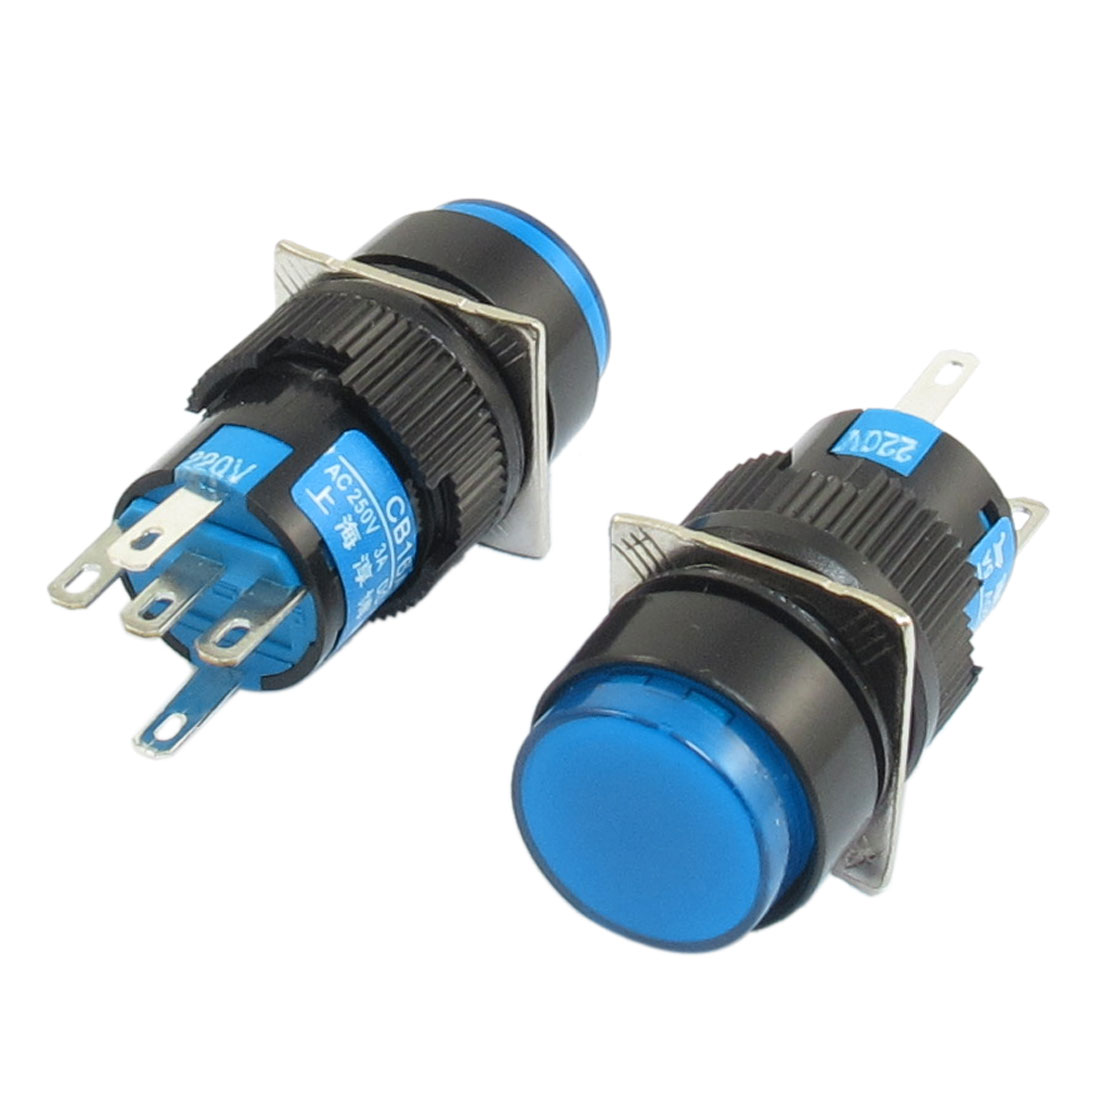 AC 220V Lamp SPDT Blue Ignition Round Head Self-locking Pushbutton Switch 2Pcs